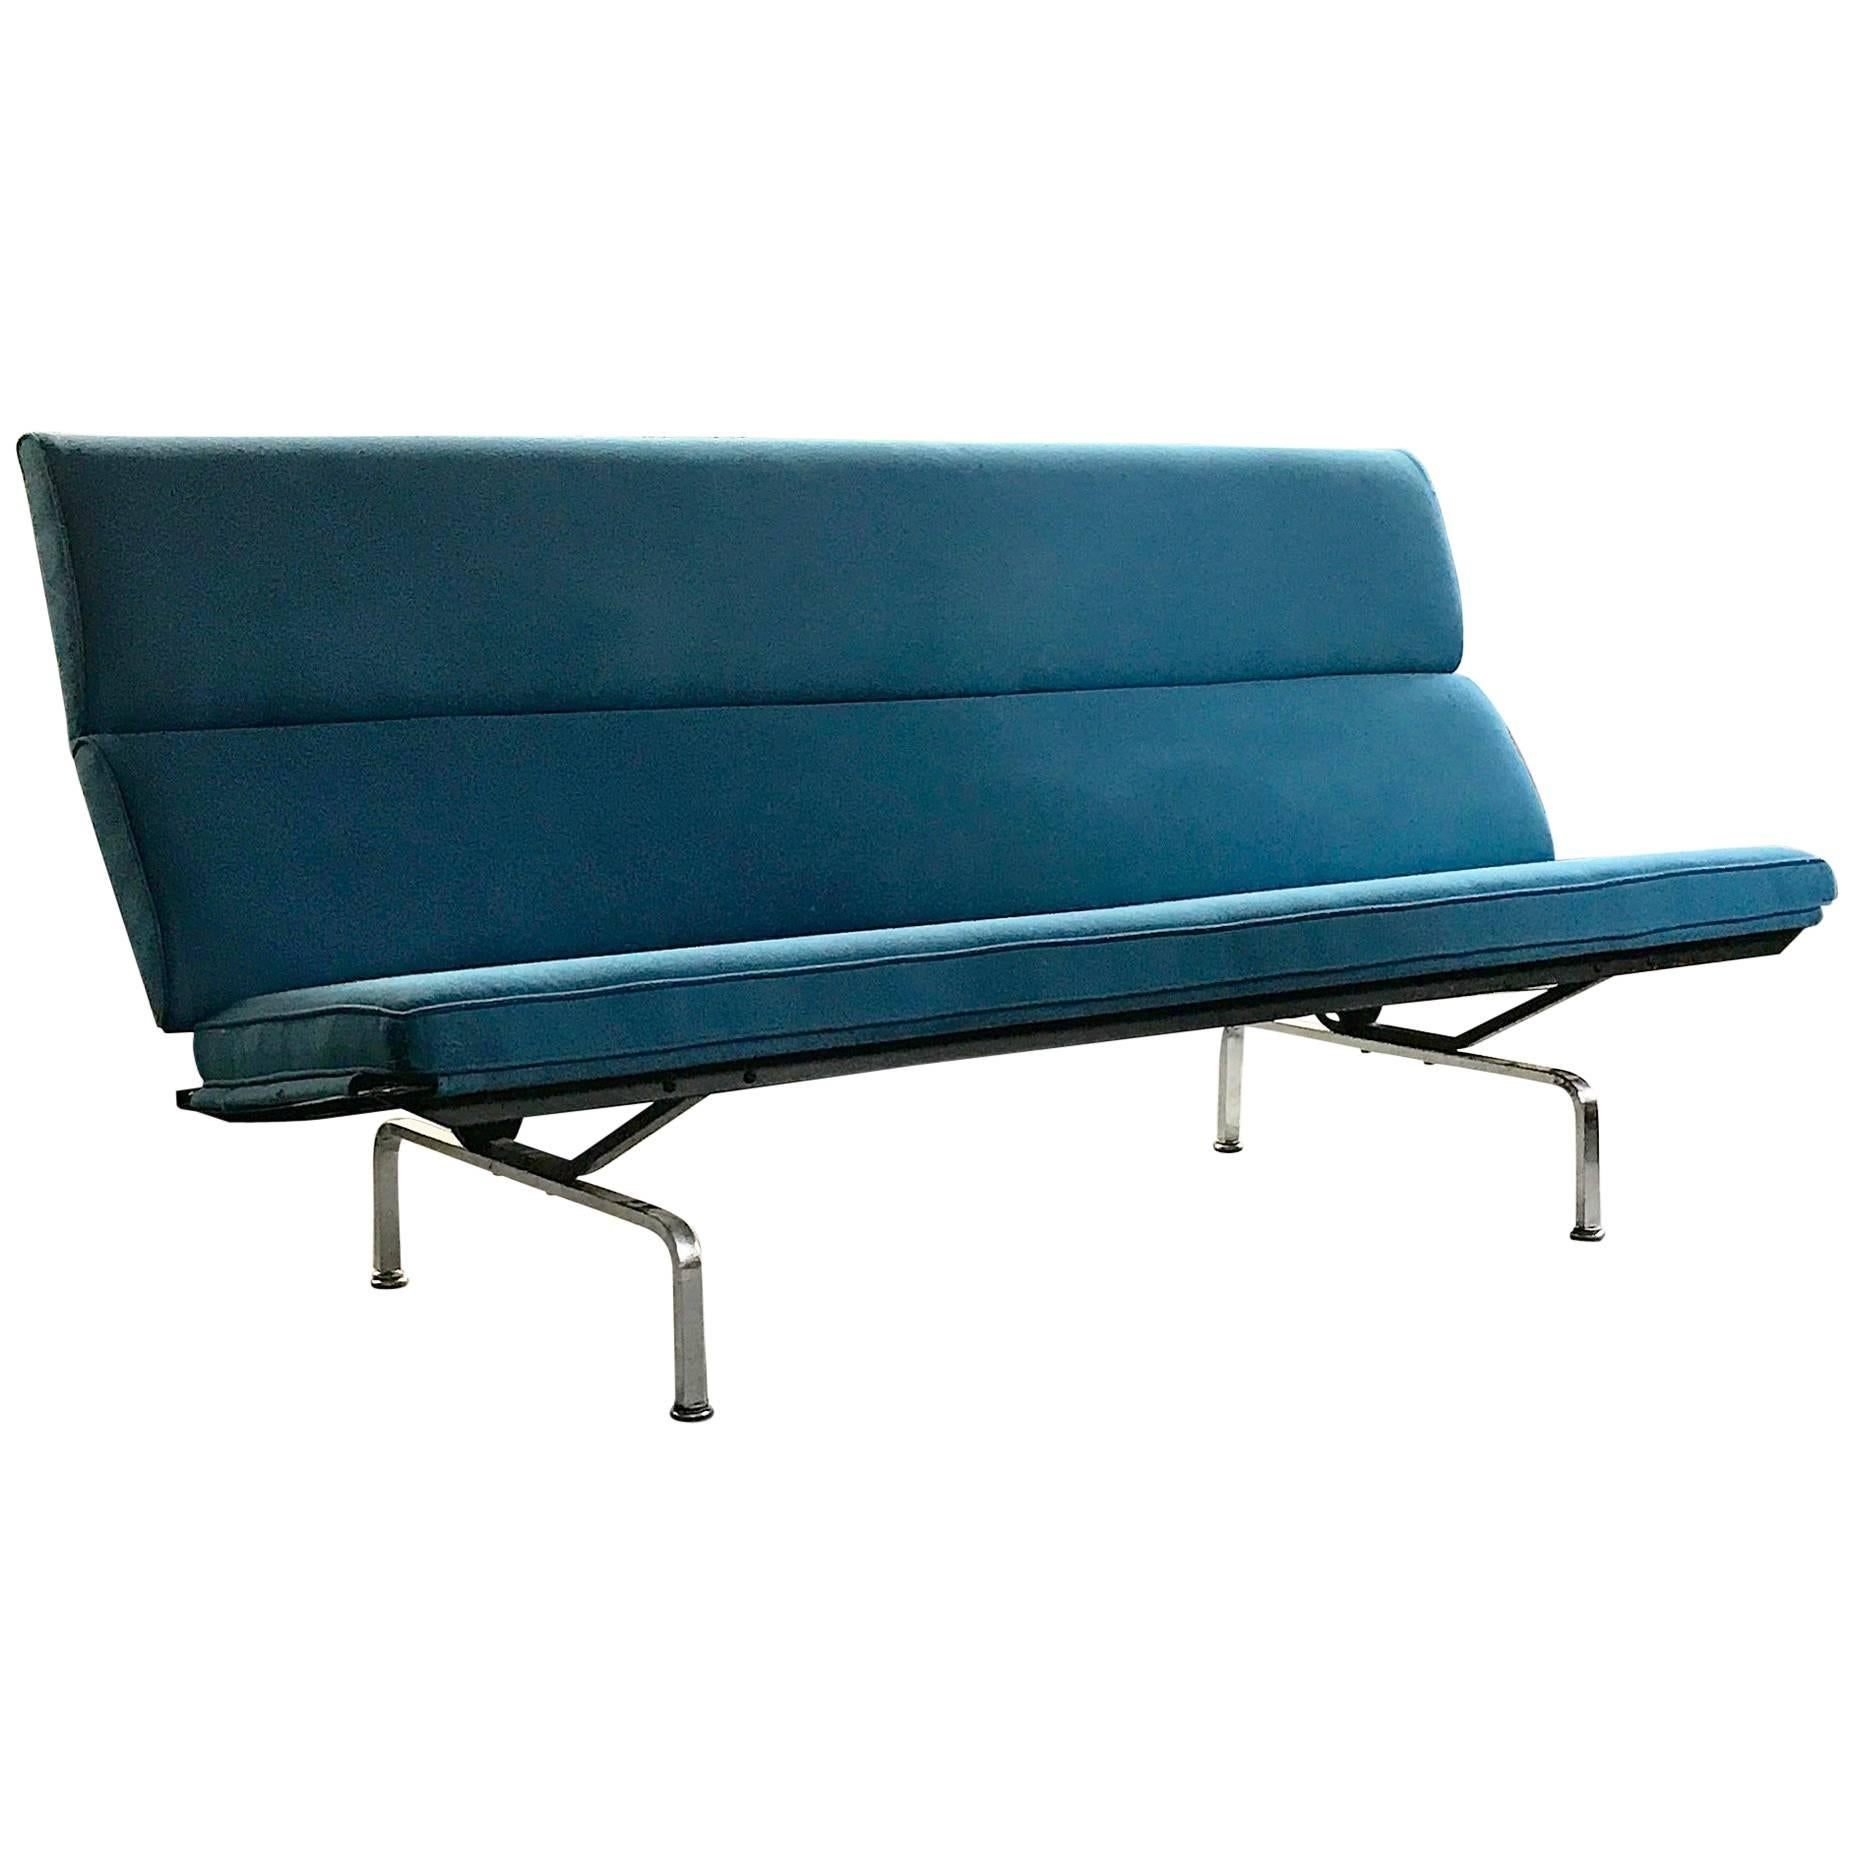 Wonderful Vintage Eames Sofa Compact By Herman Miller For Sale